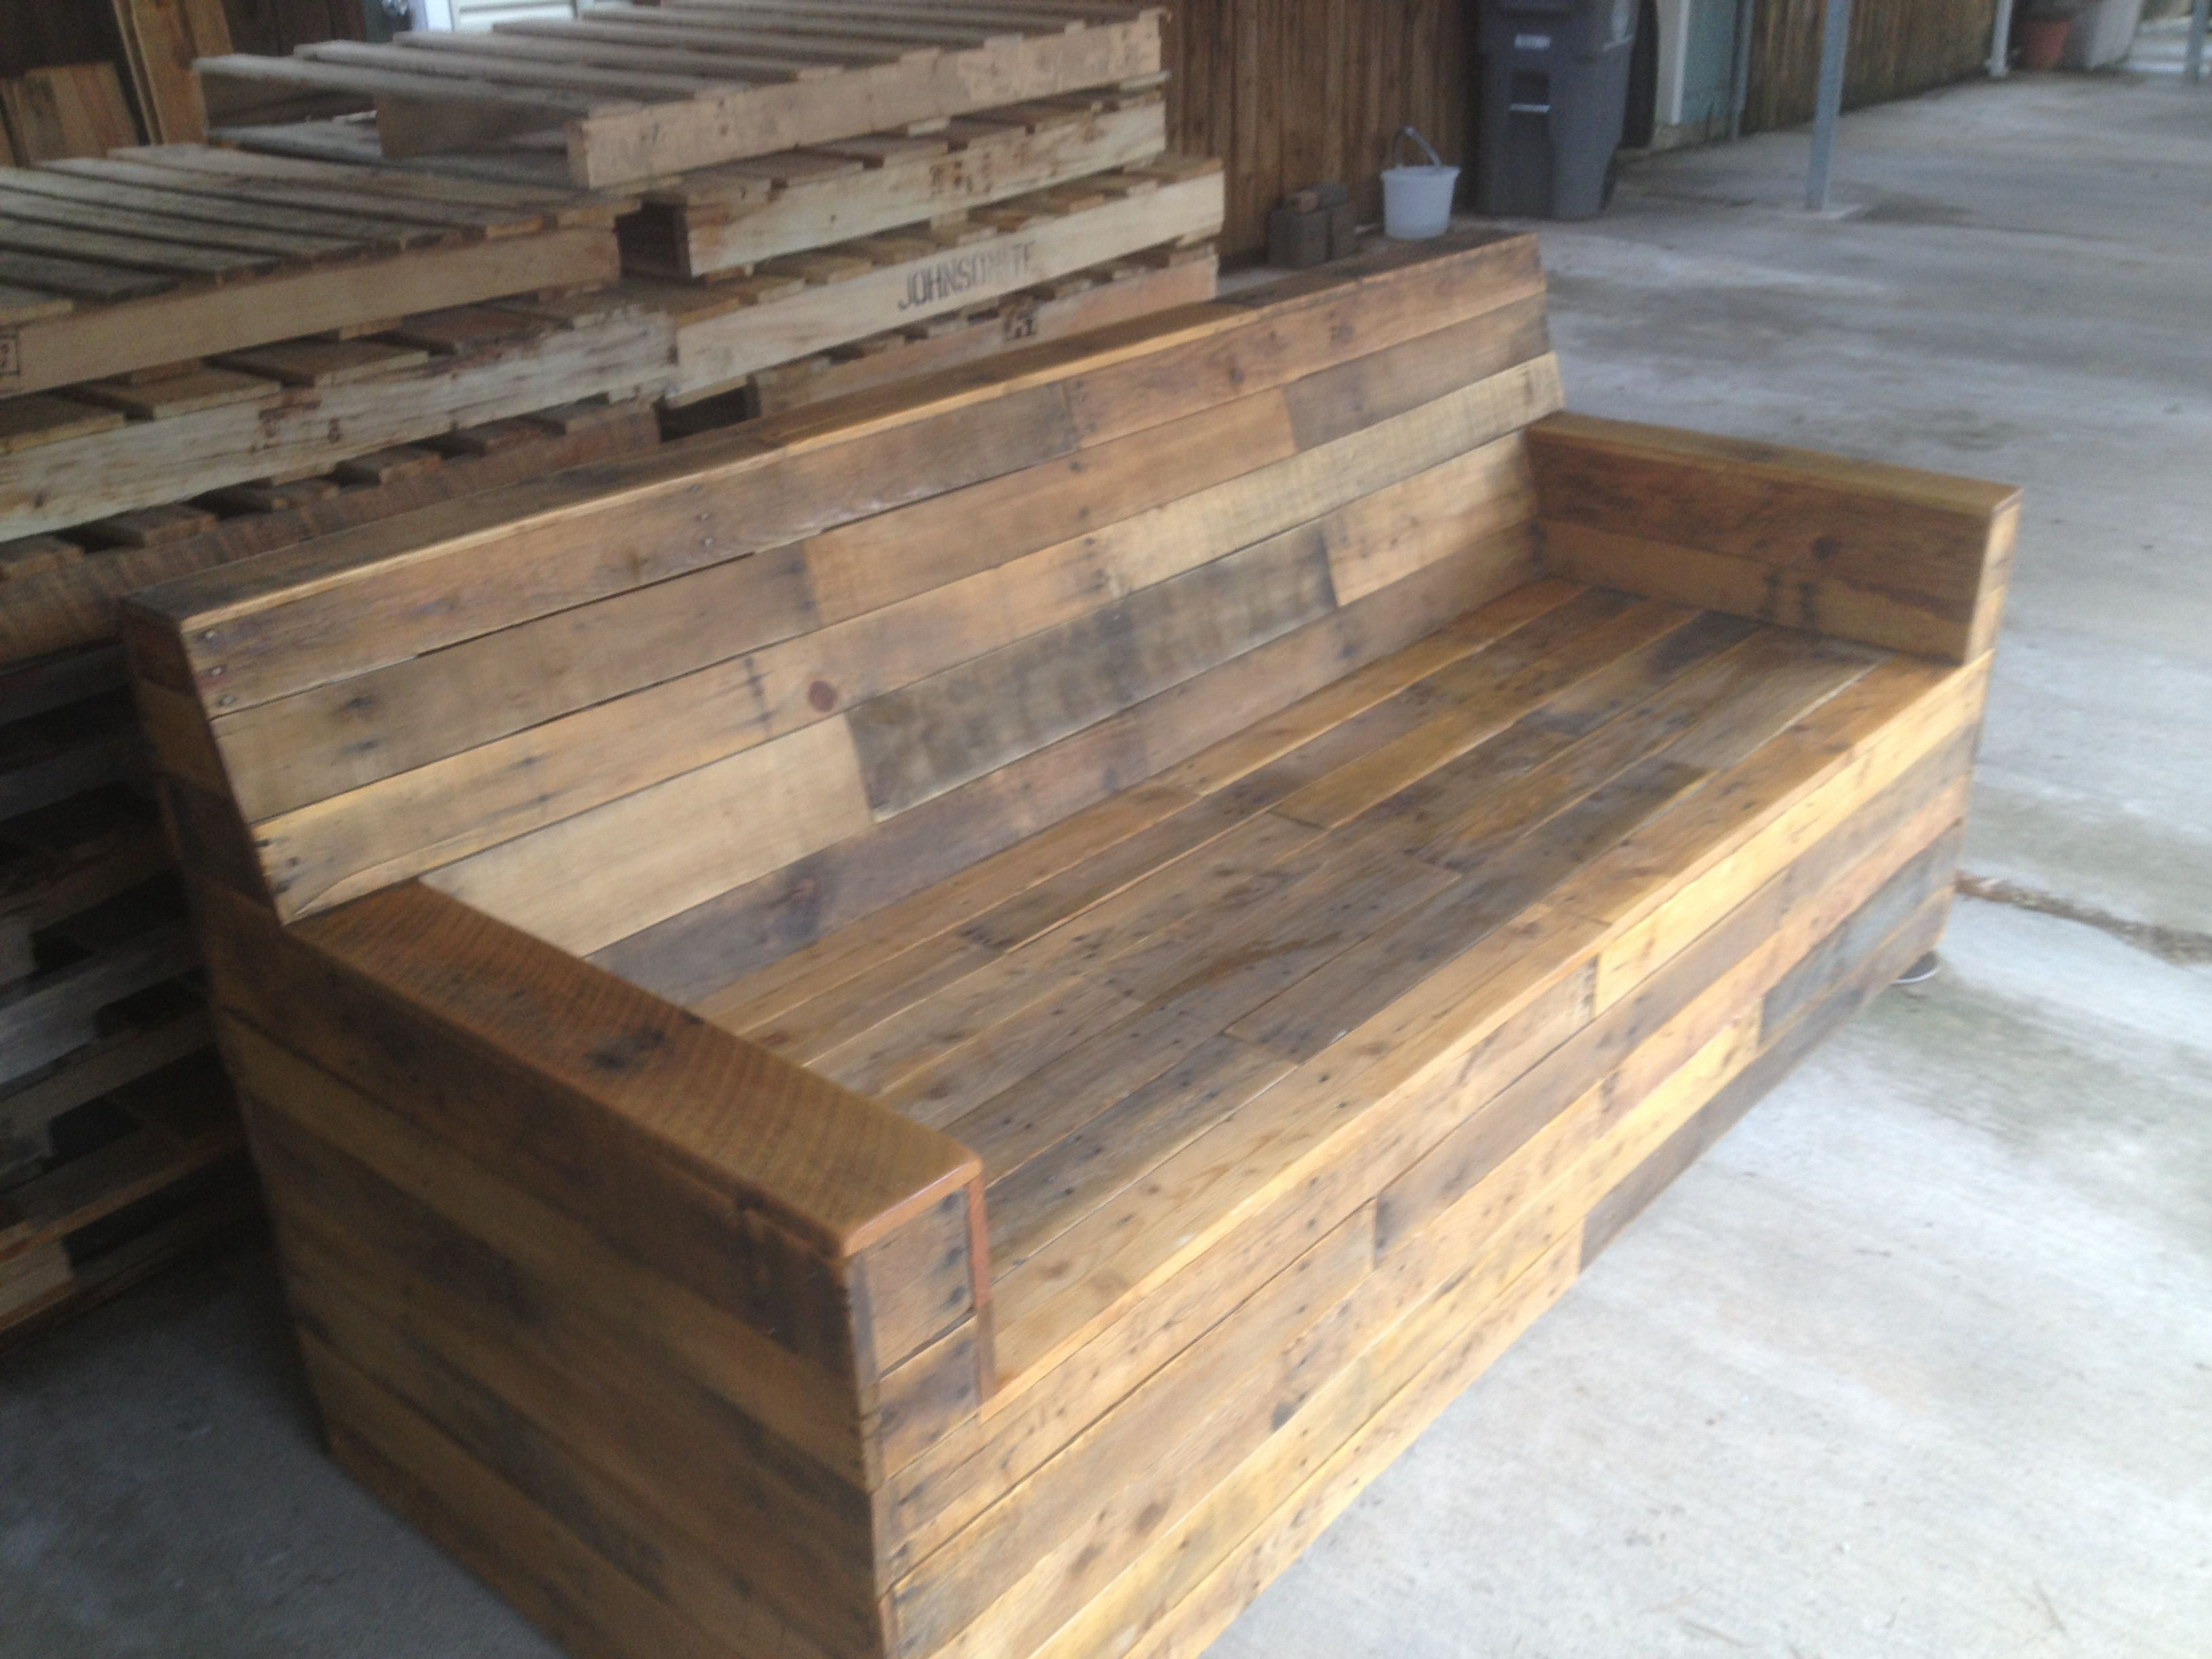 diy sofa from pallets minotti sofas preis stained pallet reclaimed wood furniture